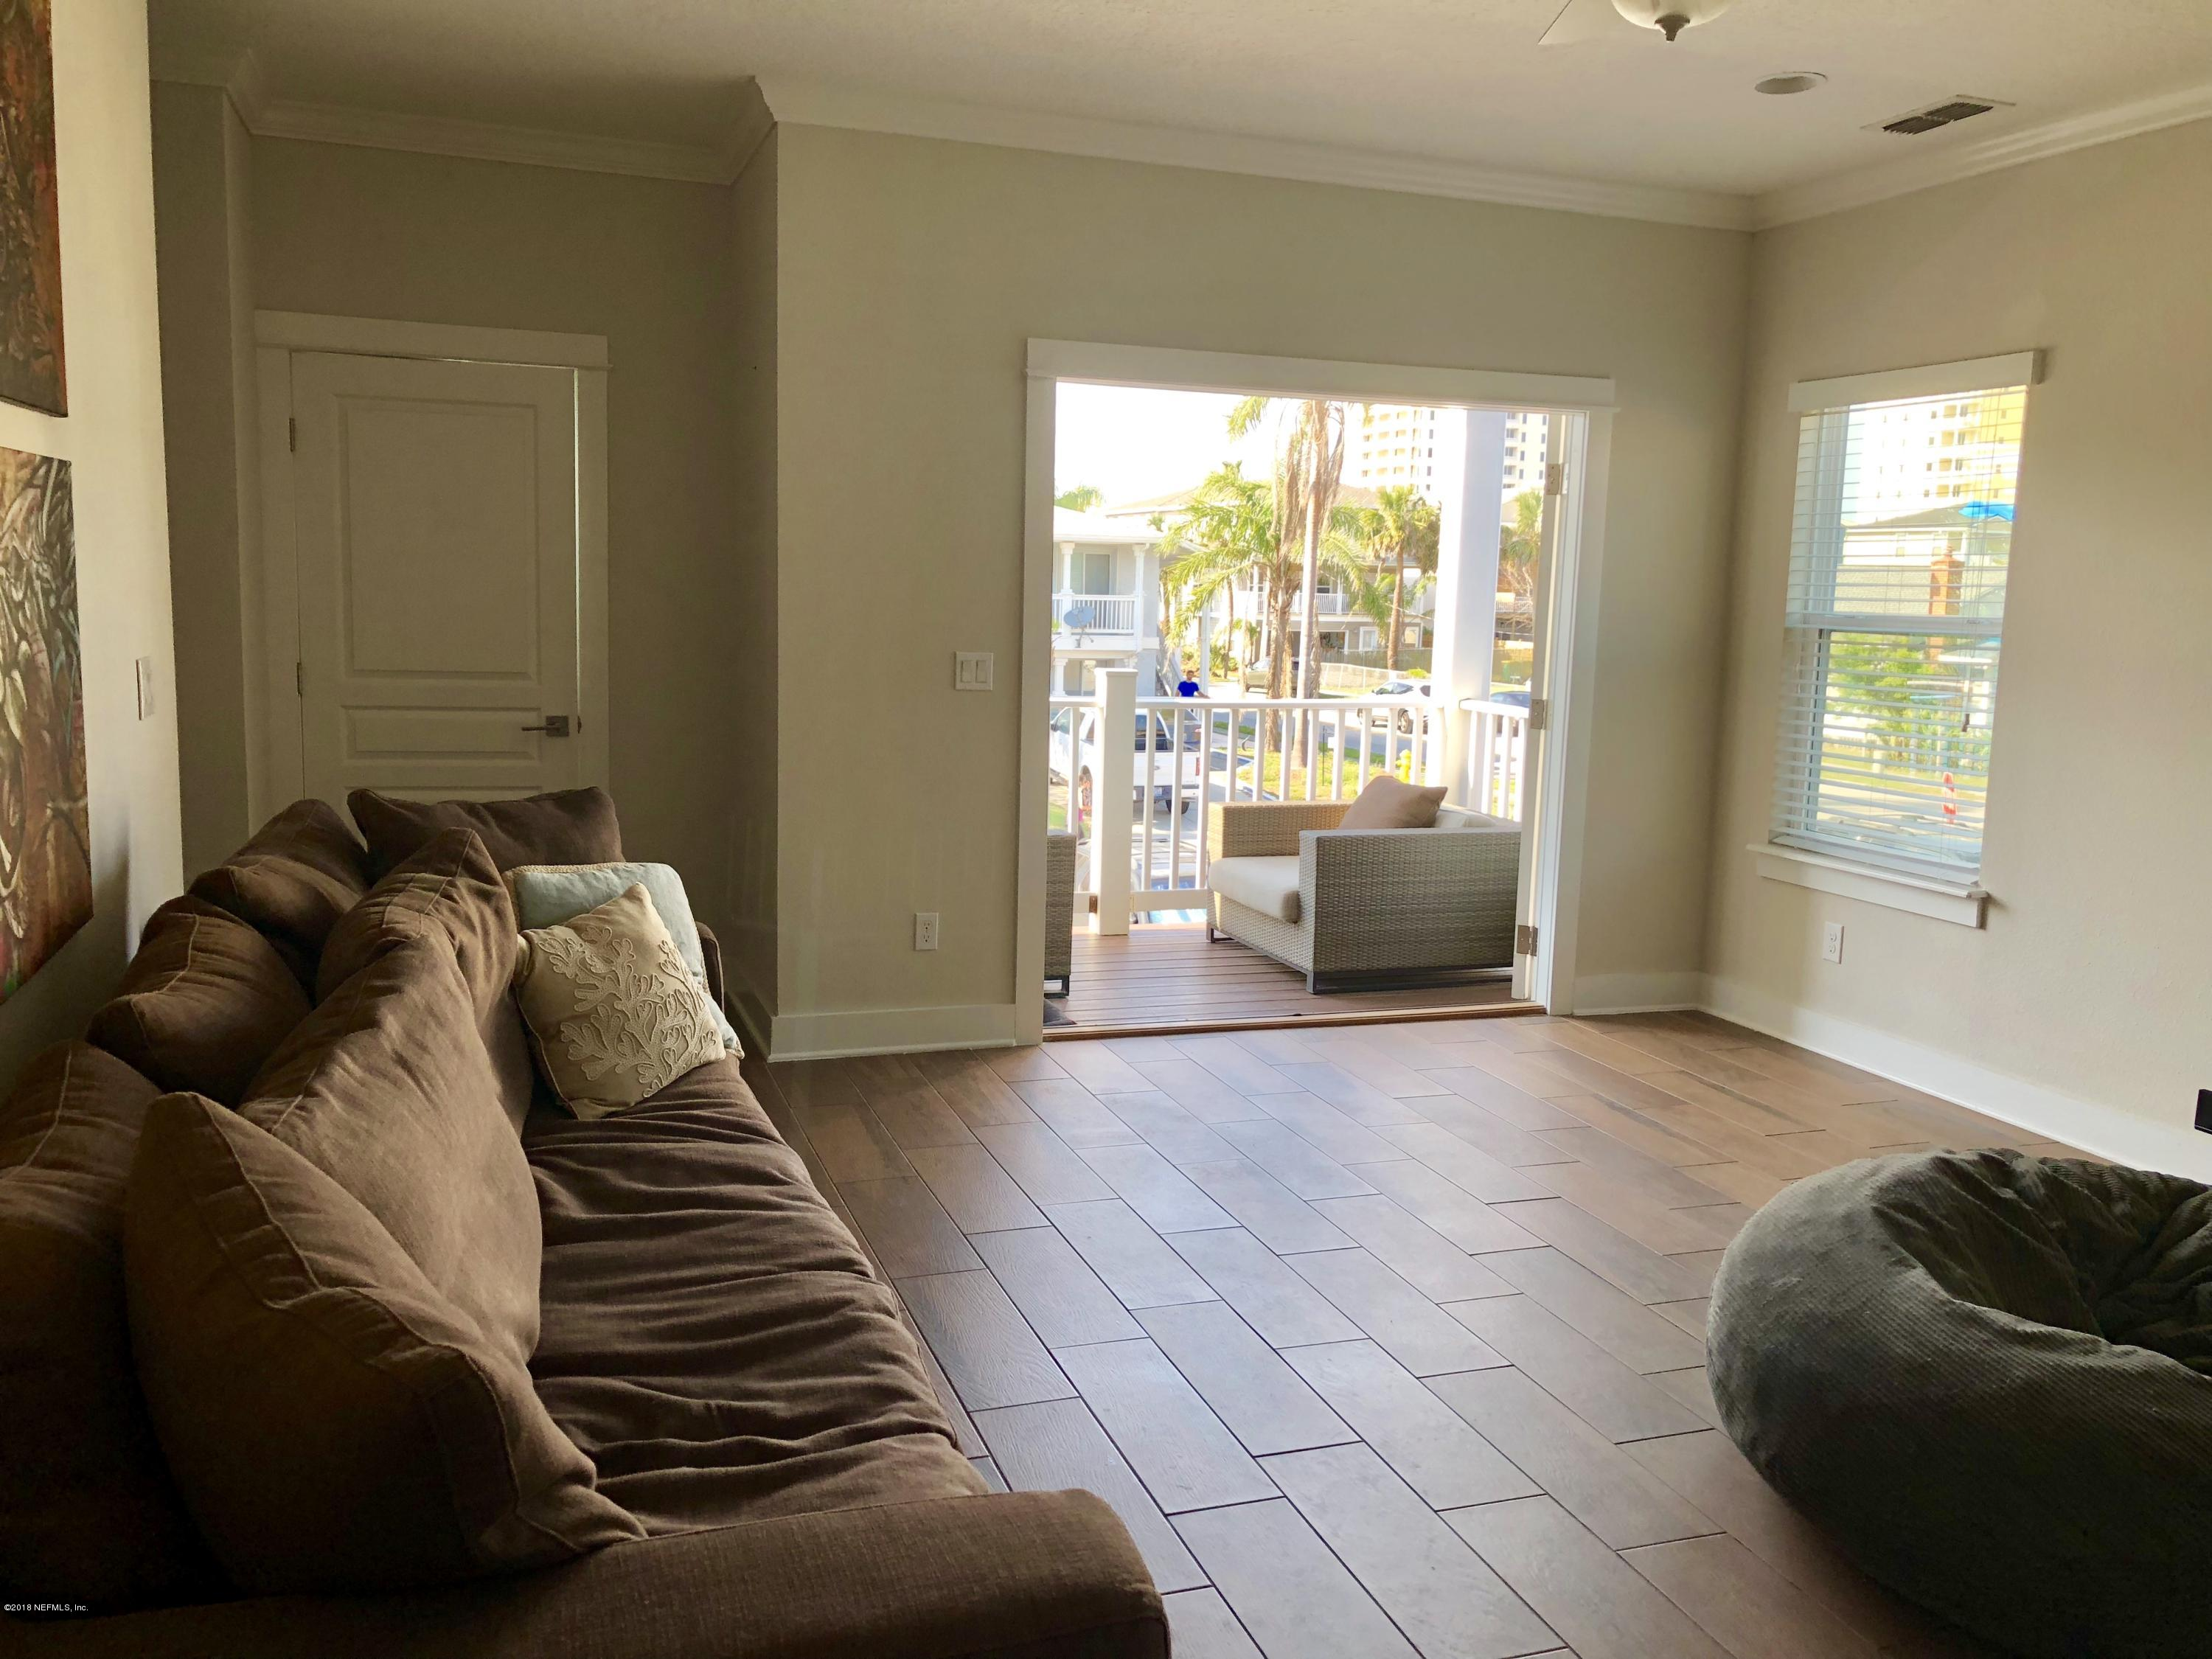 208 12TH, JACKSONVILLE BEACH, FLORIDA 32250, 3 Bedrooms Bedrooms, ,3 BathroomsBathrooms,Residential - townhome,For sale,12TH,937160